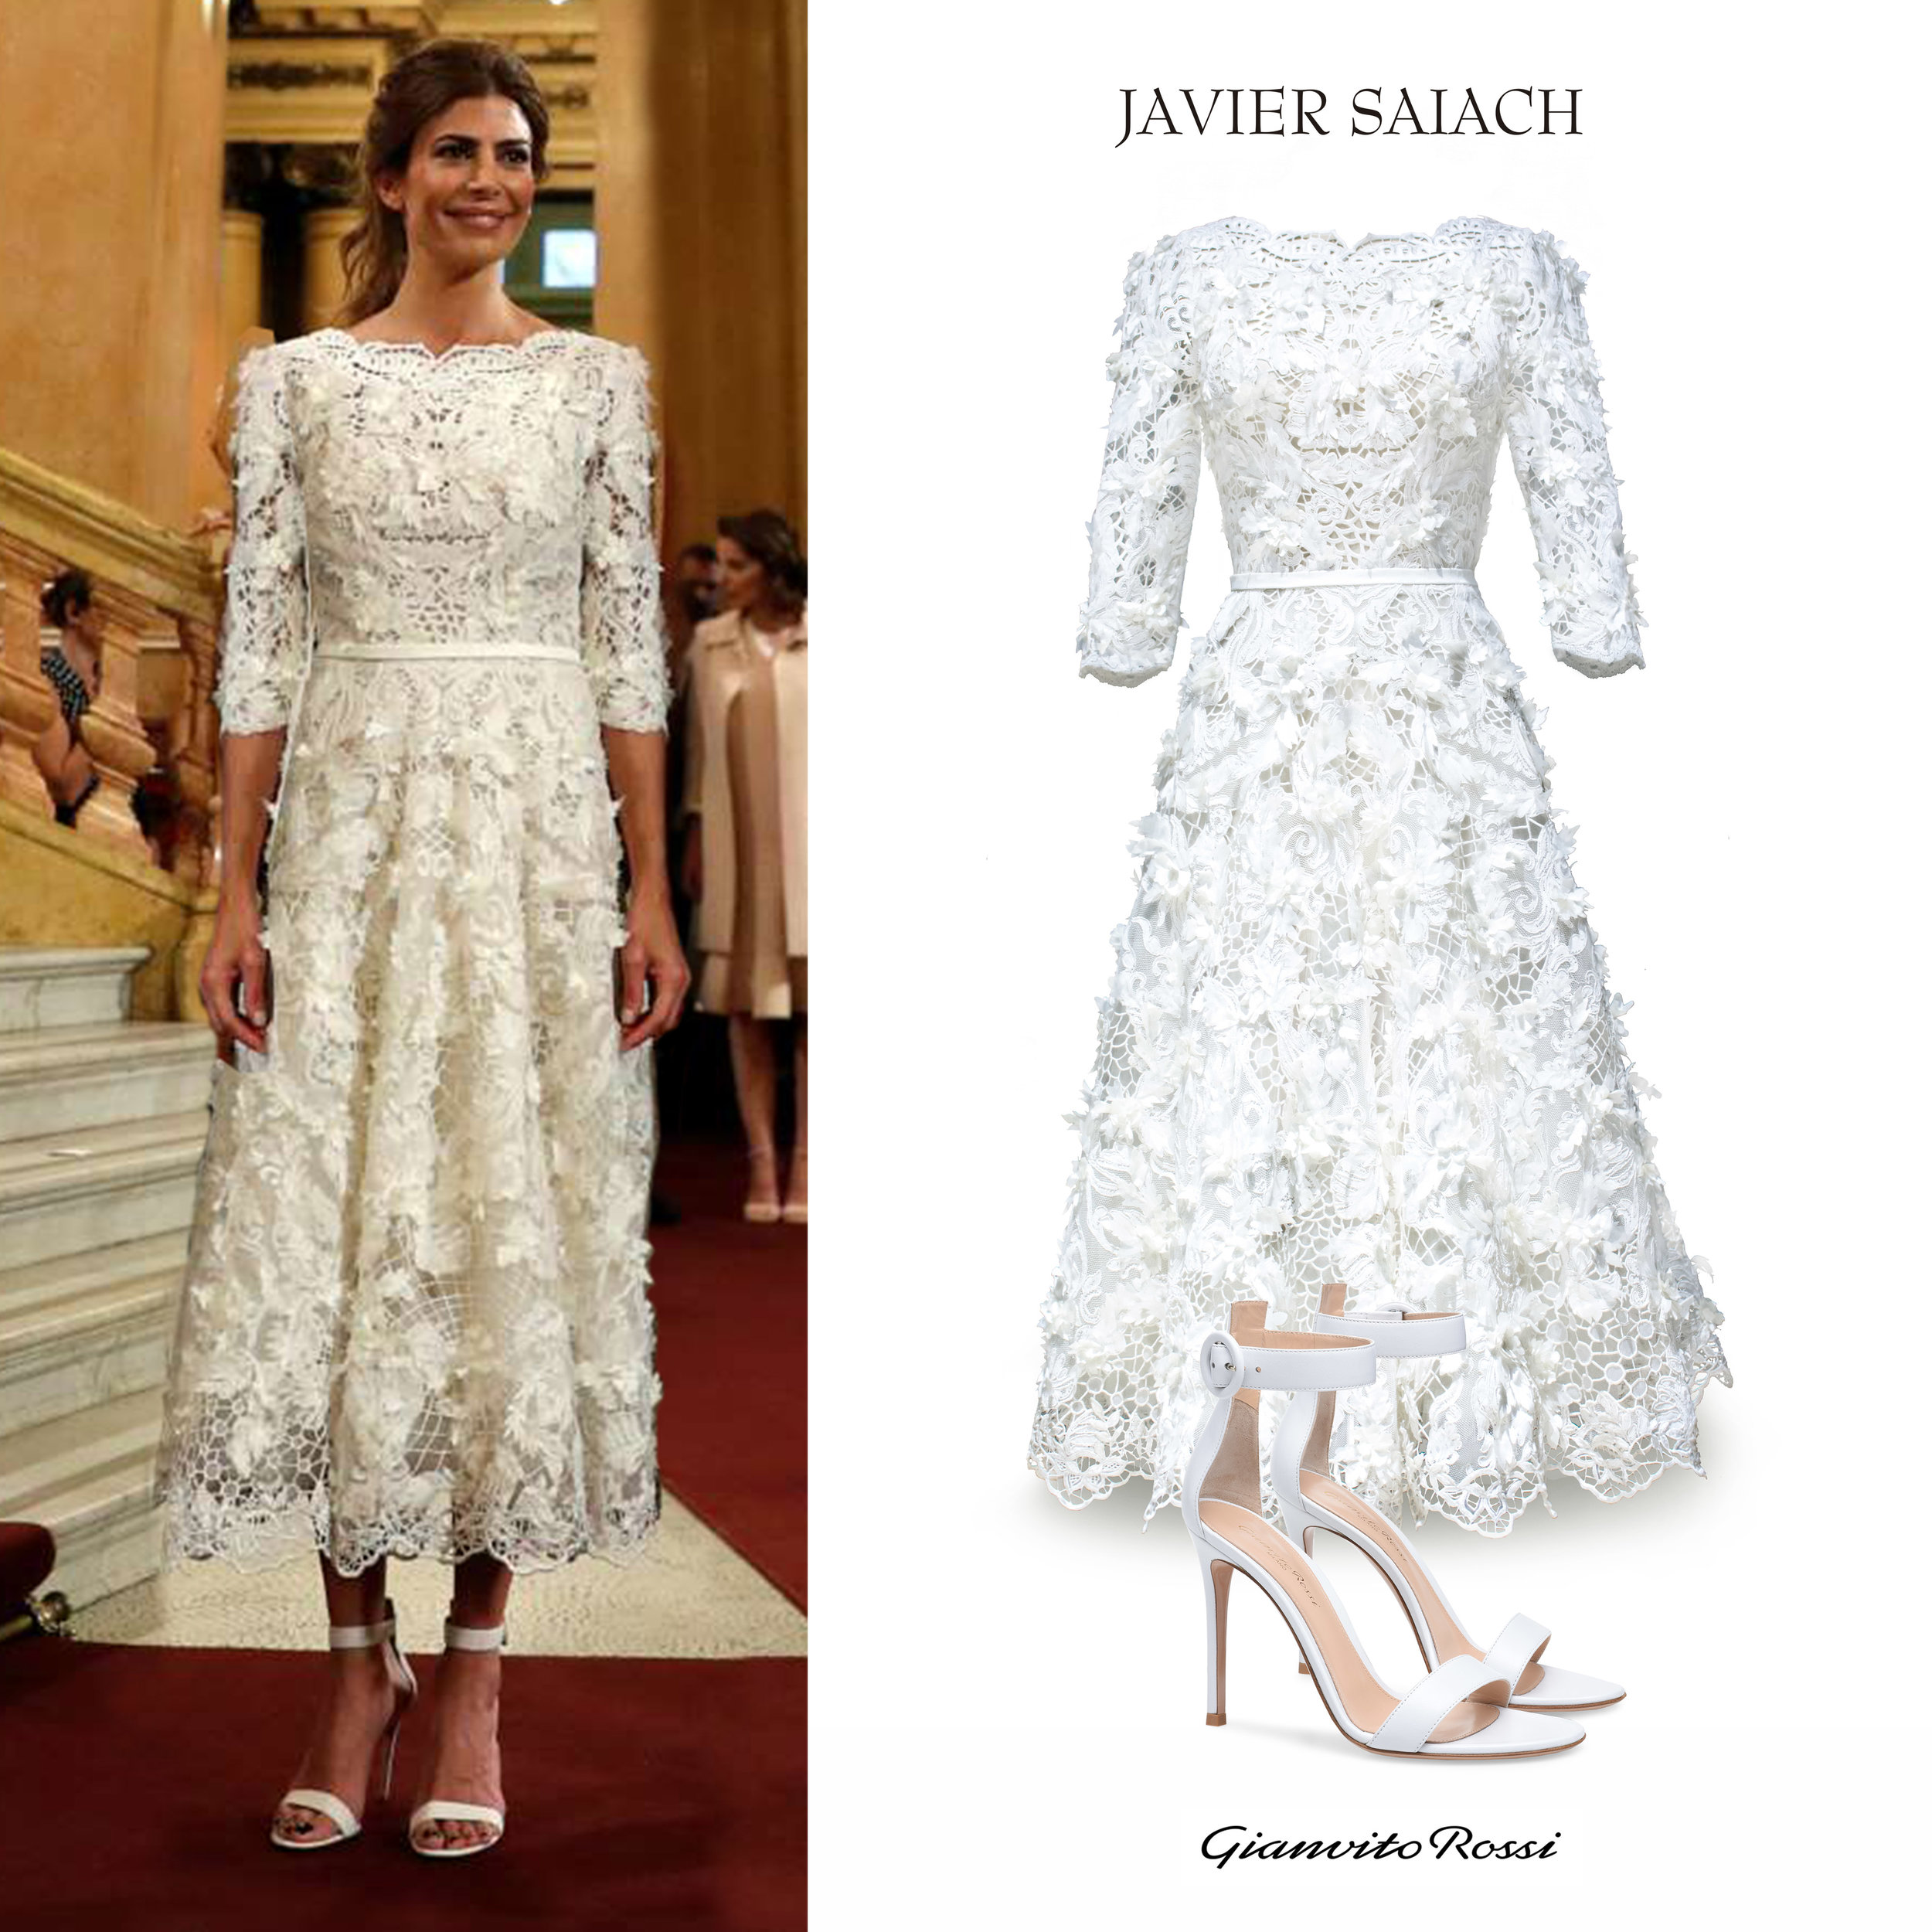 Juliana_Awada_G20_Summit_Cumbre_Grupo_Gala_Teatro_Colon_Opera_Buenos_Aires_2018_Vestido_Javier_Saiach_White_Dress_Long_Sleeve_Lace_Embroidered_Gianvito_Rossi_White_Portofino_Sandals_Sandalias_Blancas.jpg